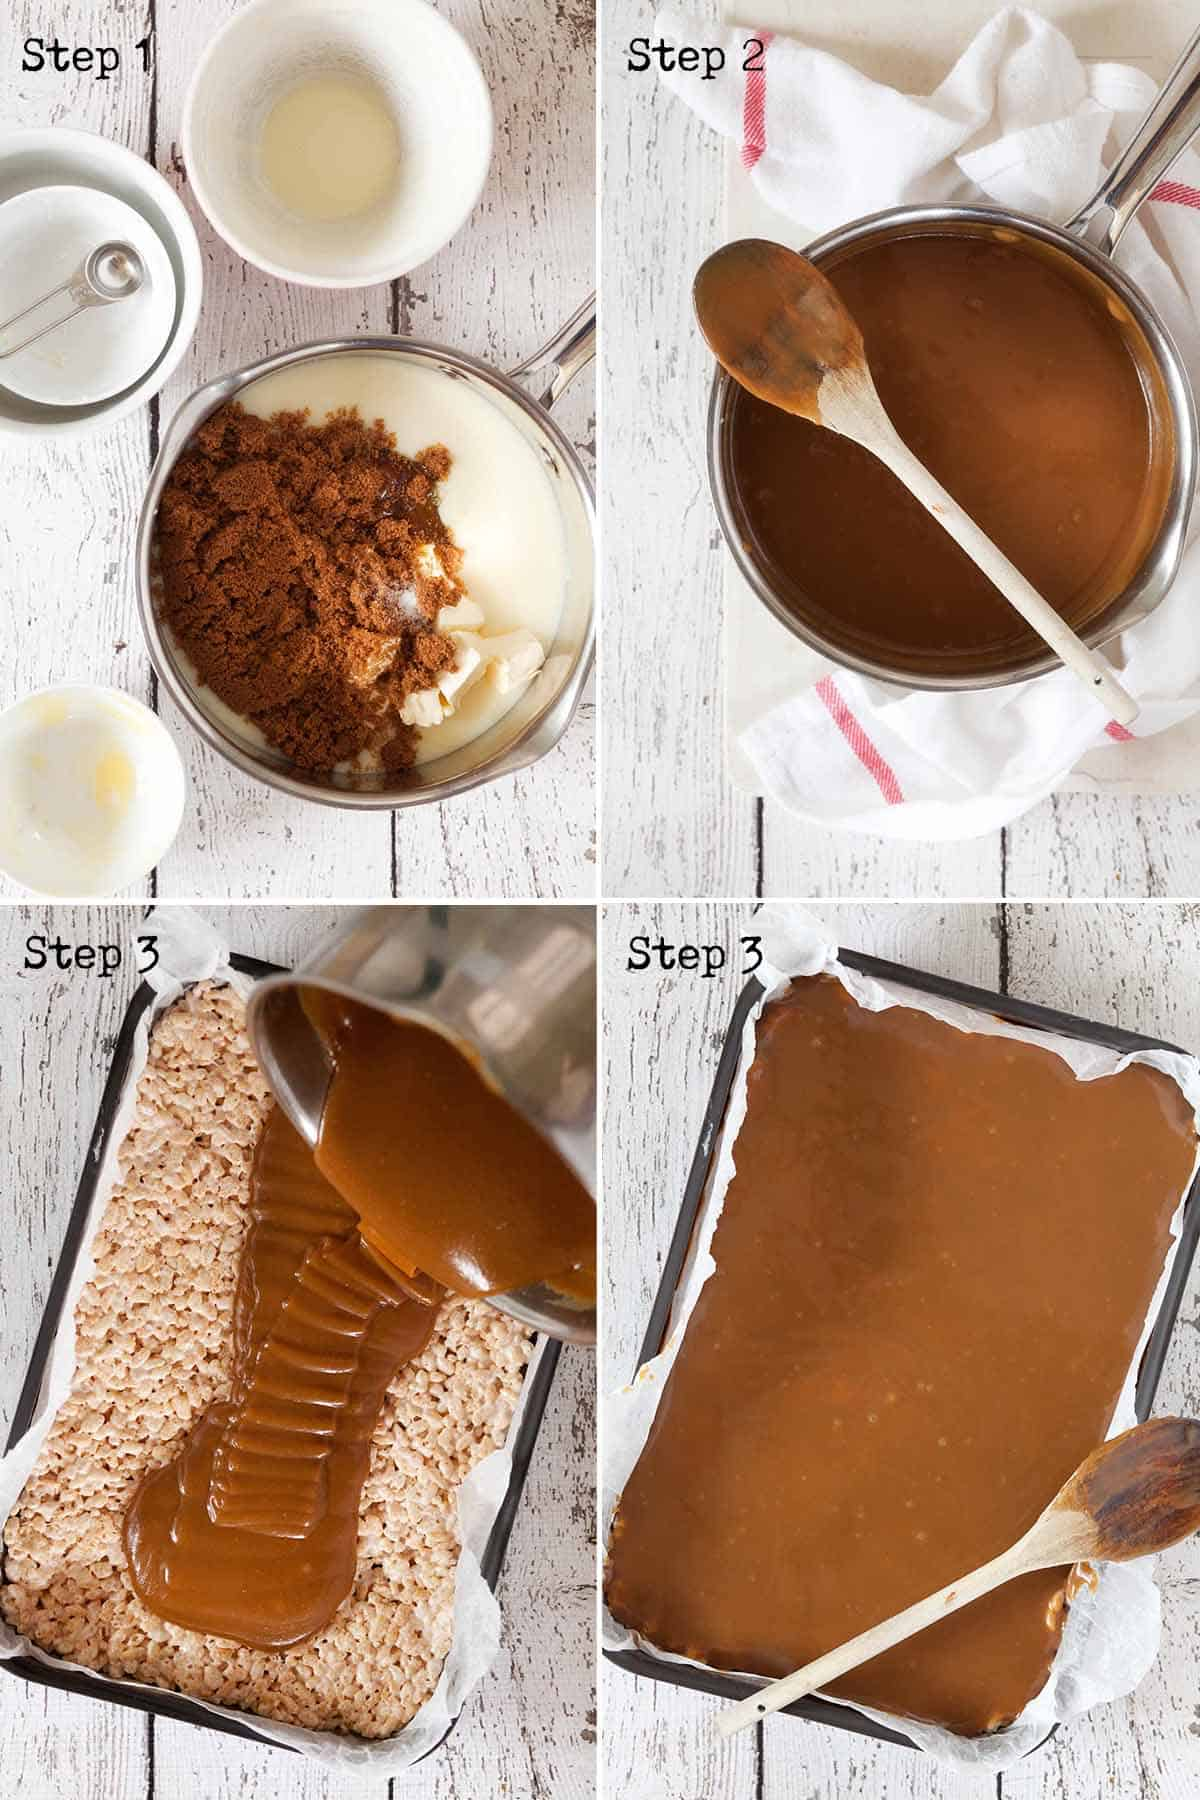 Collage of images showing caramel being made and poured into a baking tin